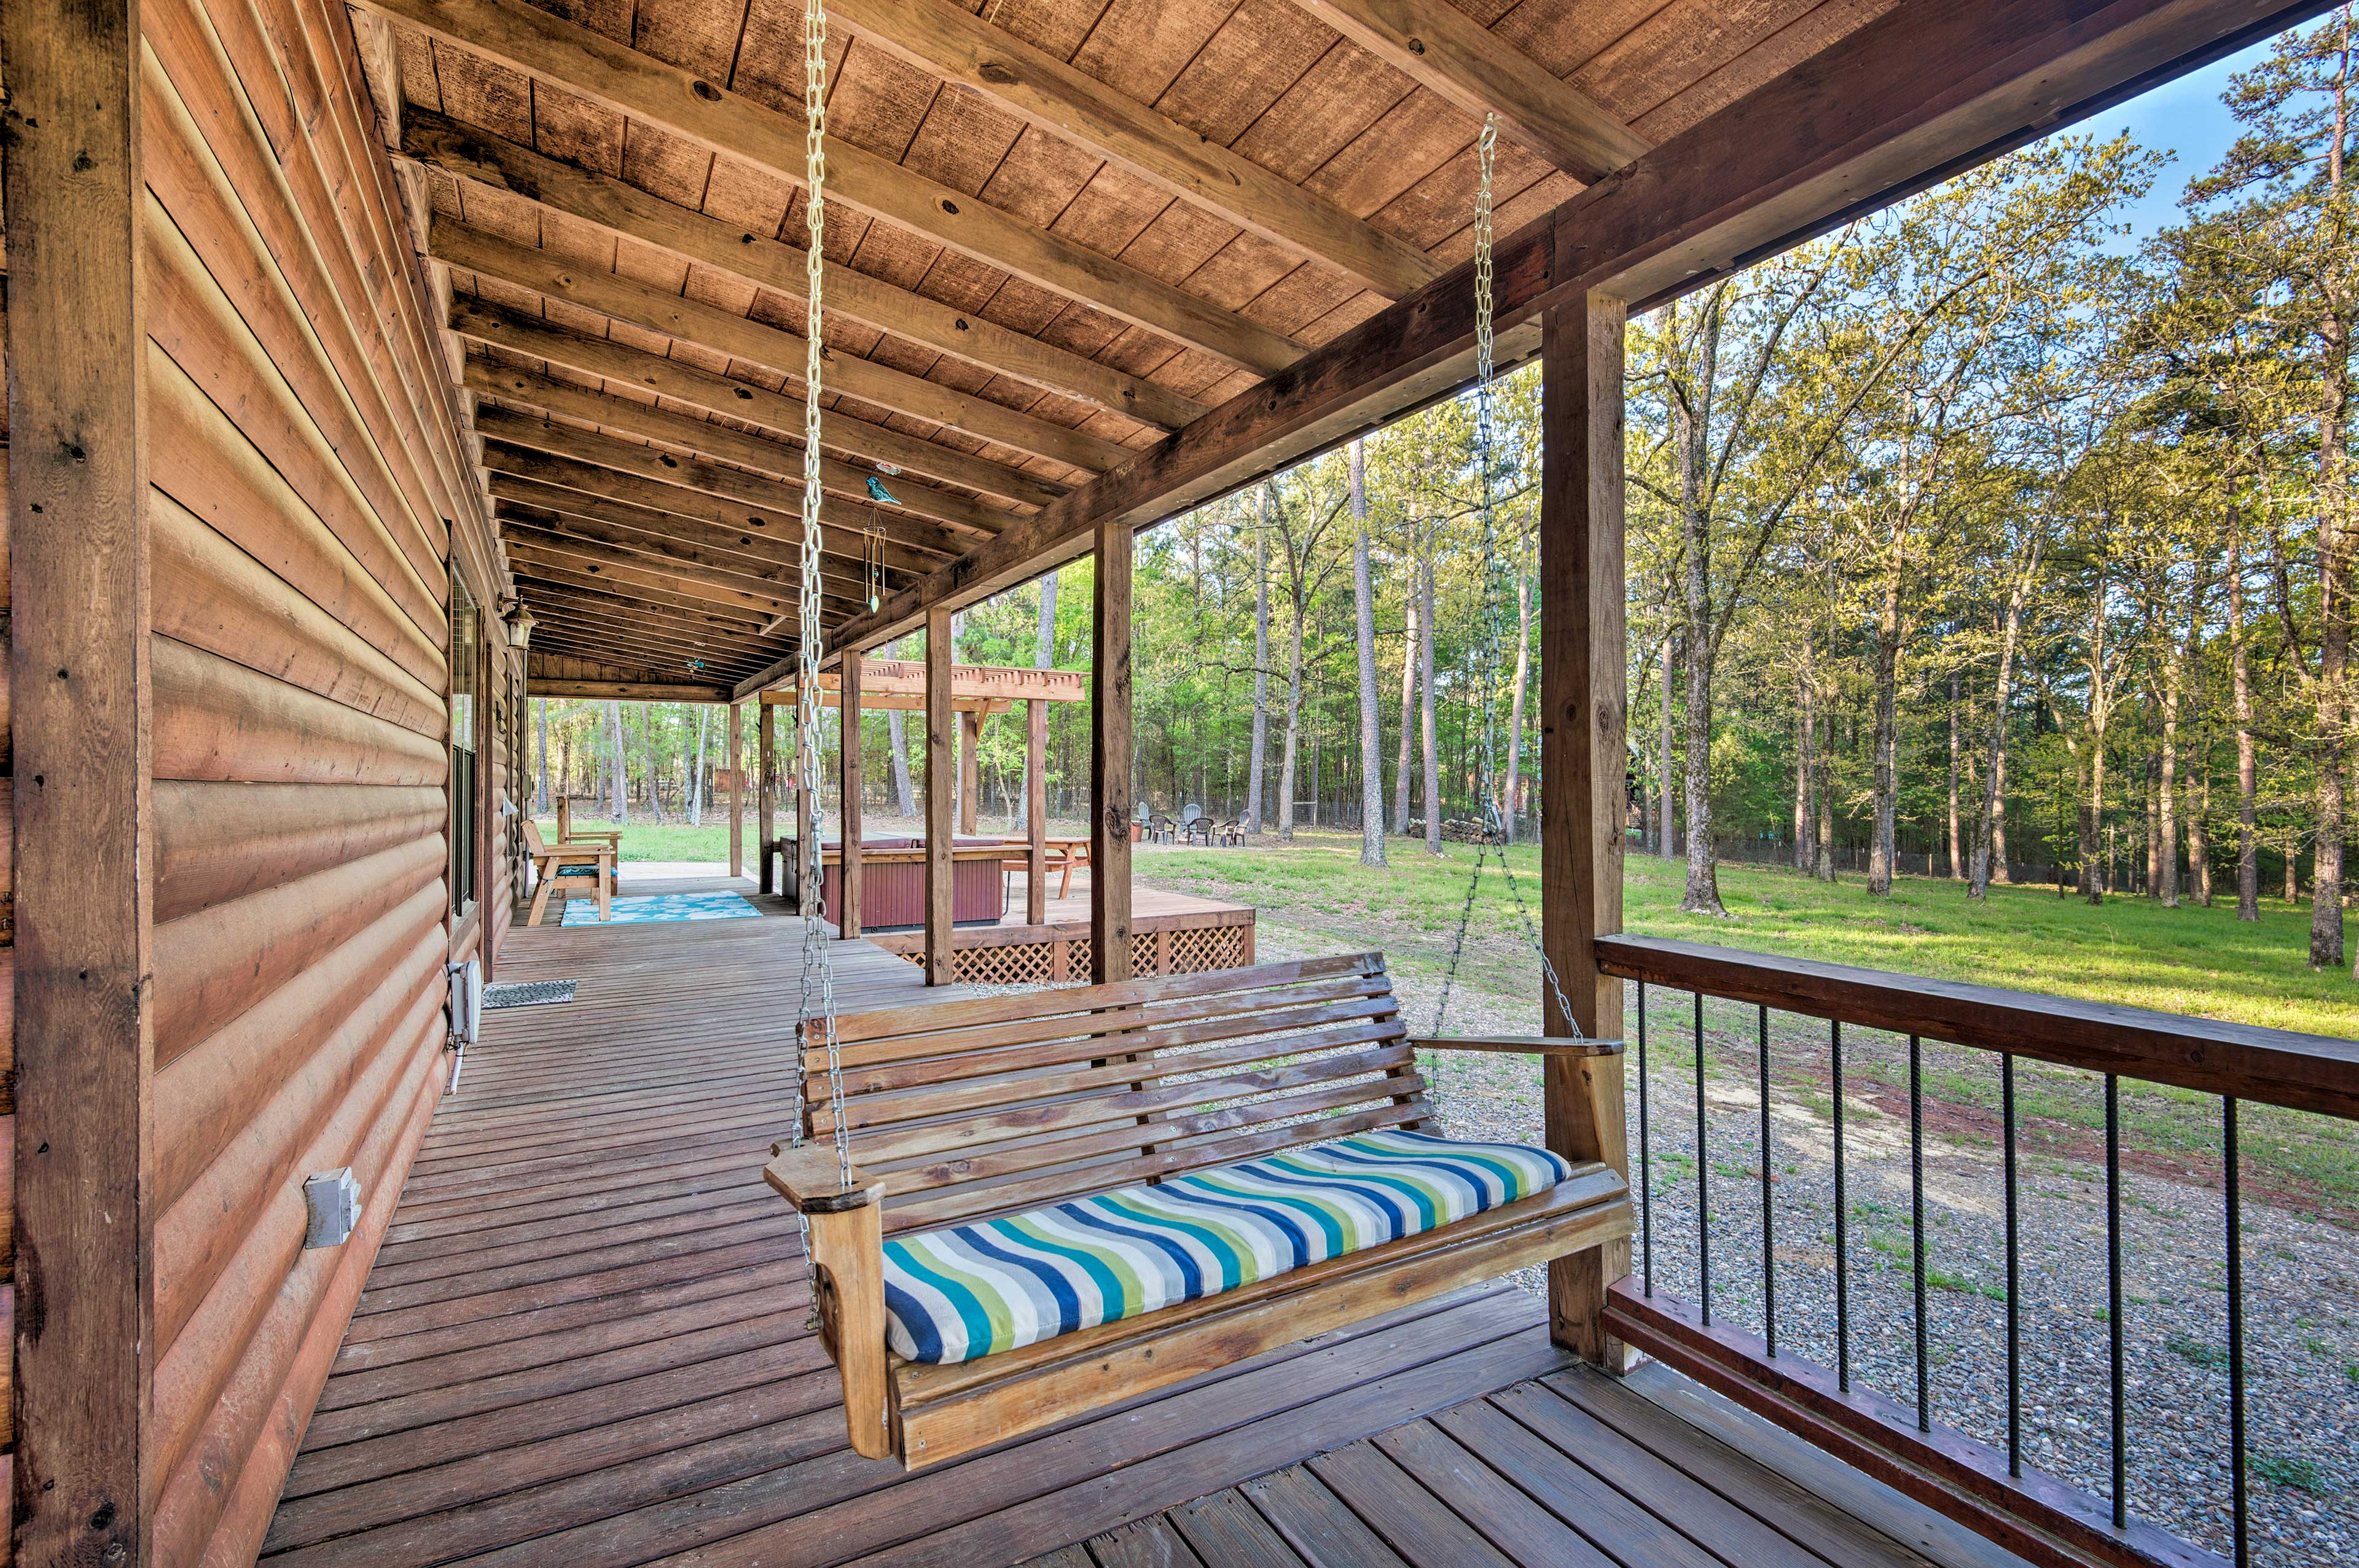 Sip sweet tea while swaying on the porch swing.